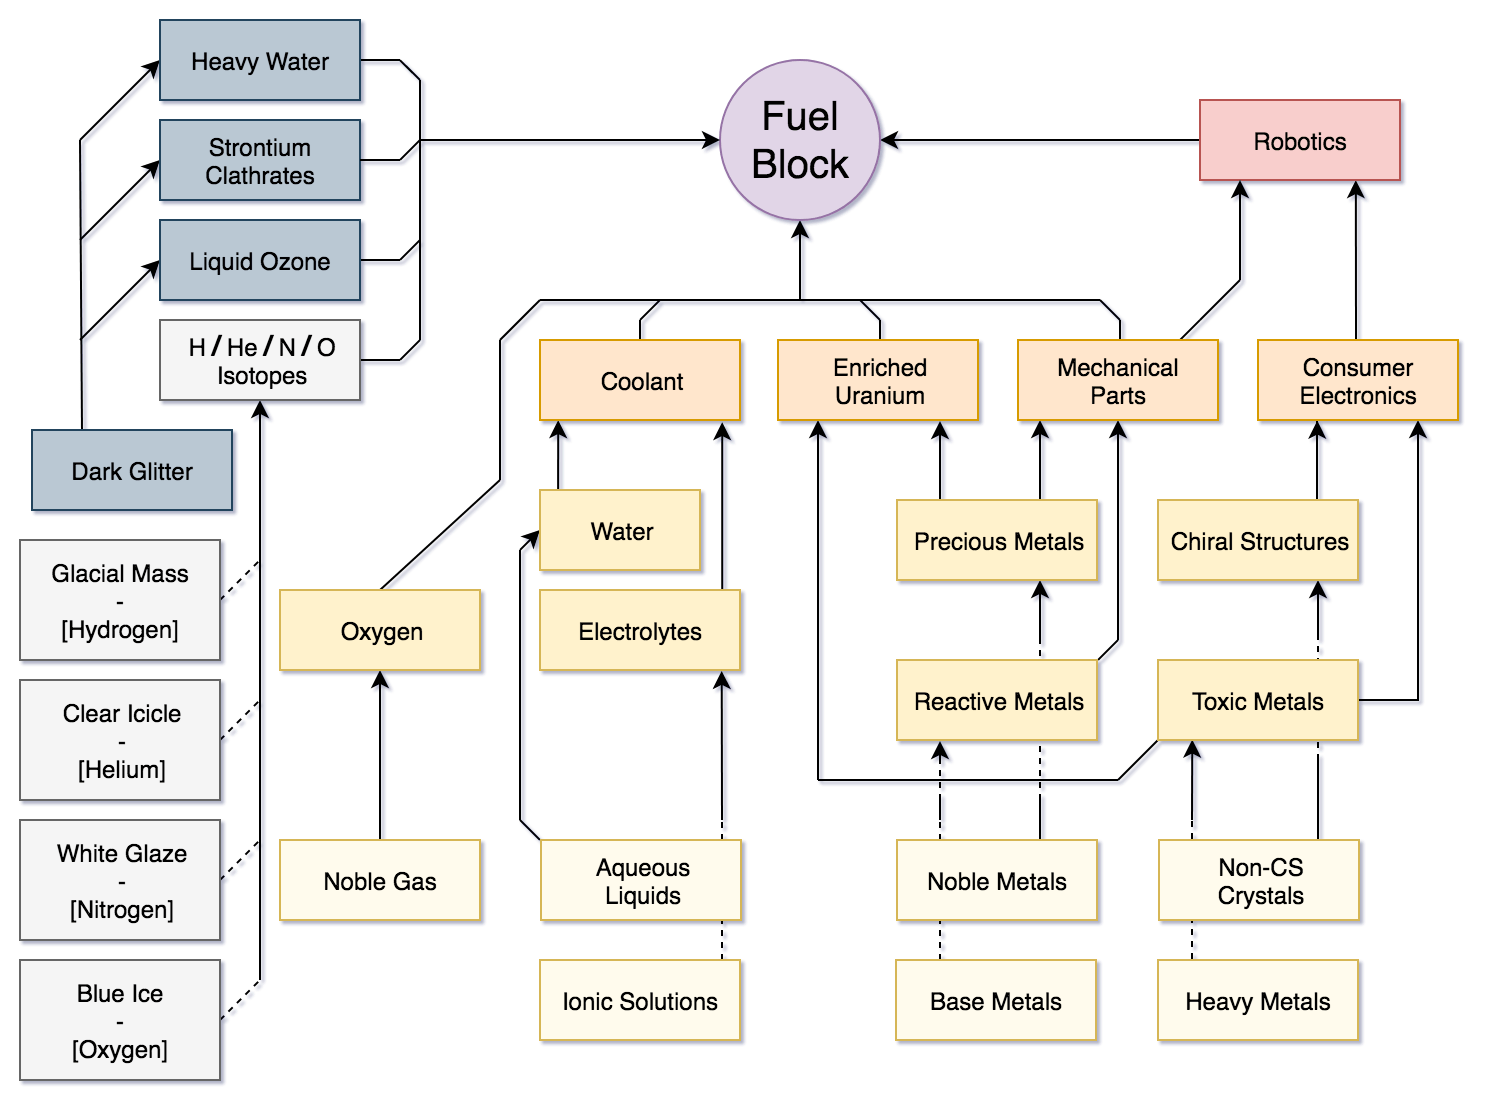 hight resolution of fuel block flow chart turns out one has free time while mining